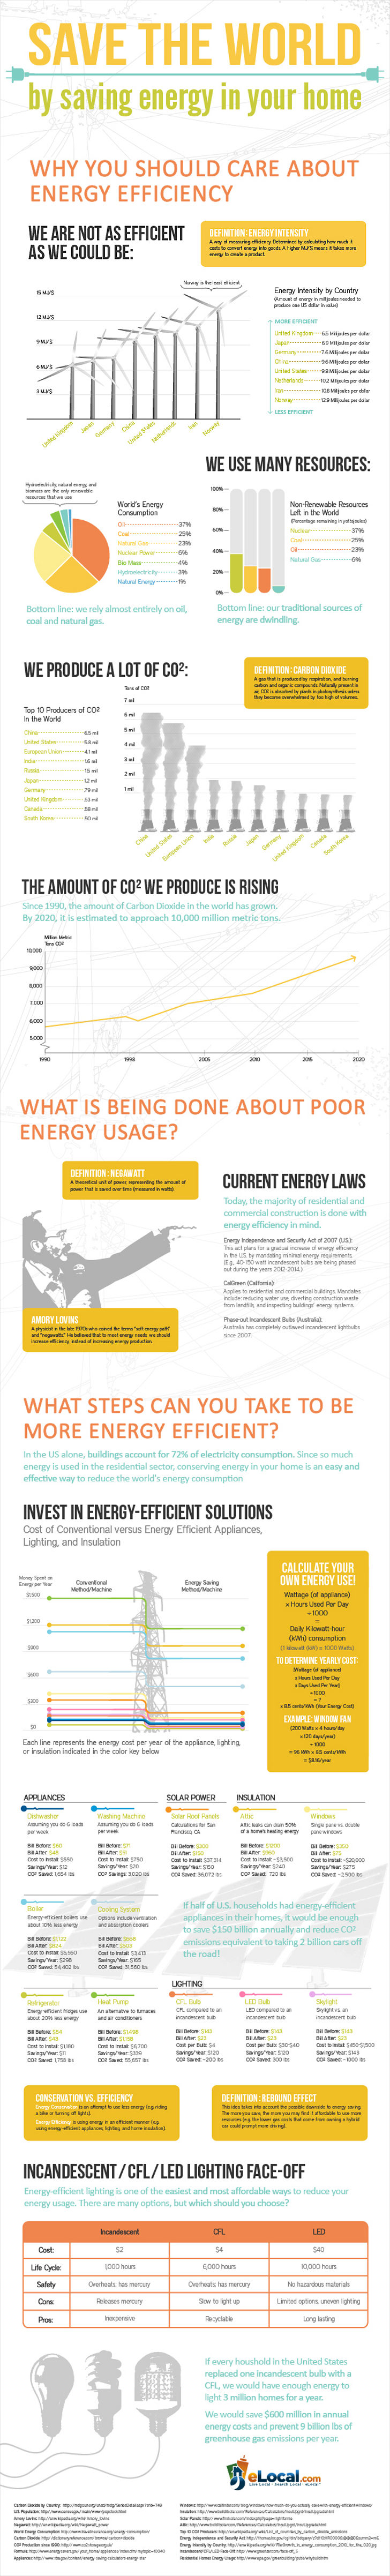 Save the world by saving energy in your home [Infographic] | ecogreenlove